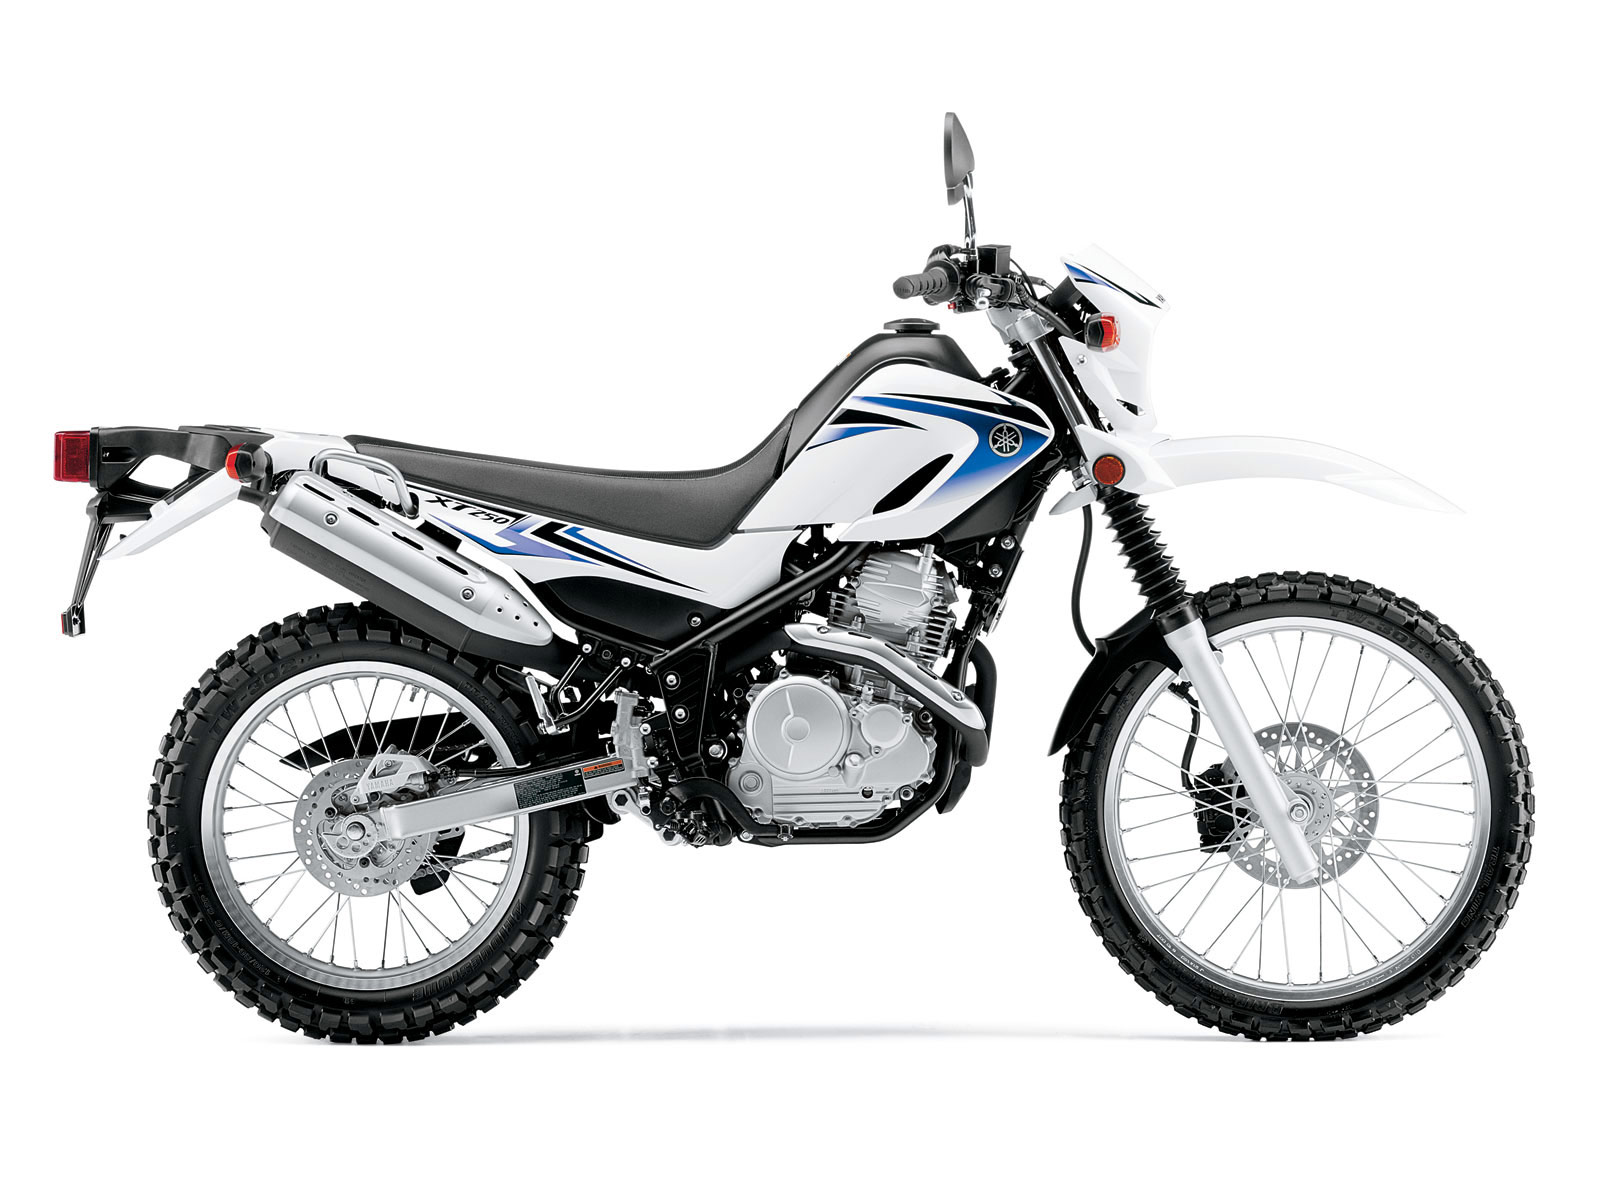 Yamaha Xt250 Motorcycle Insurance Information